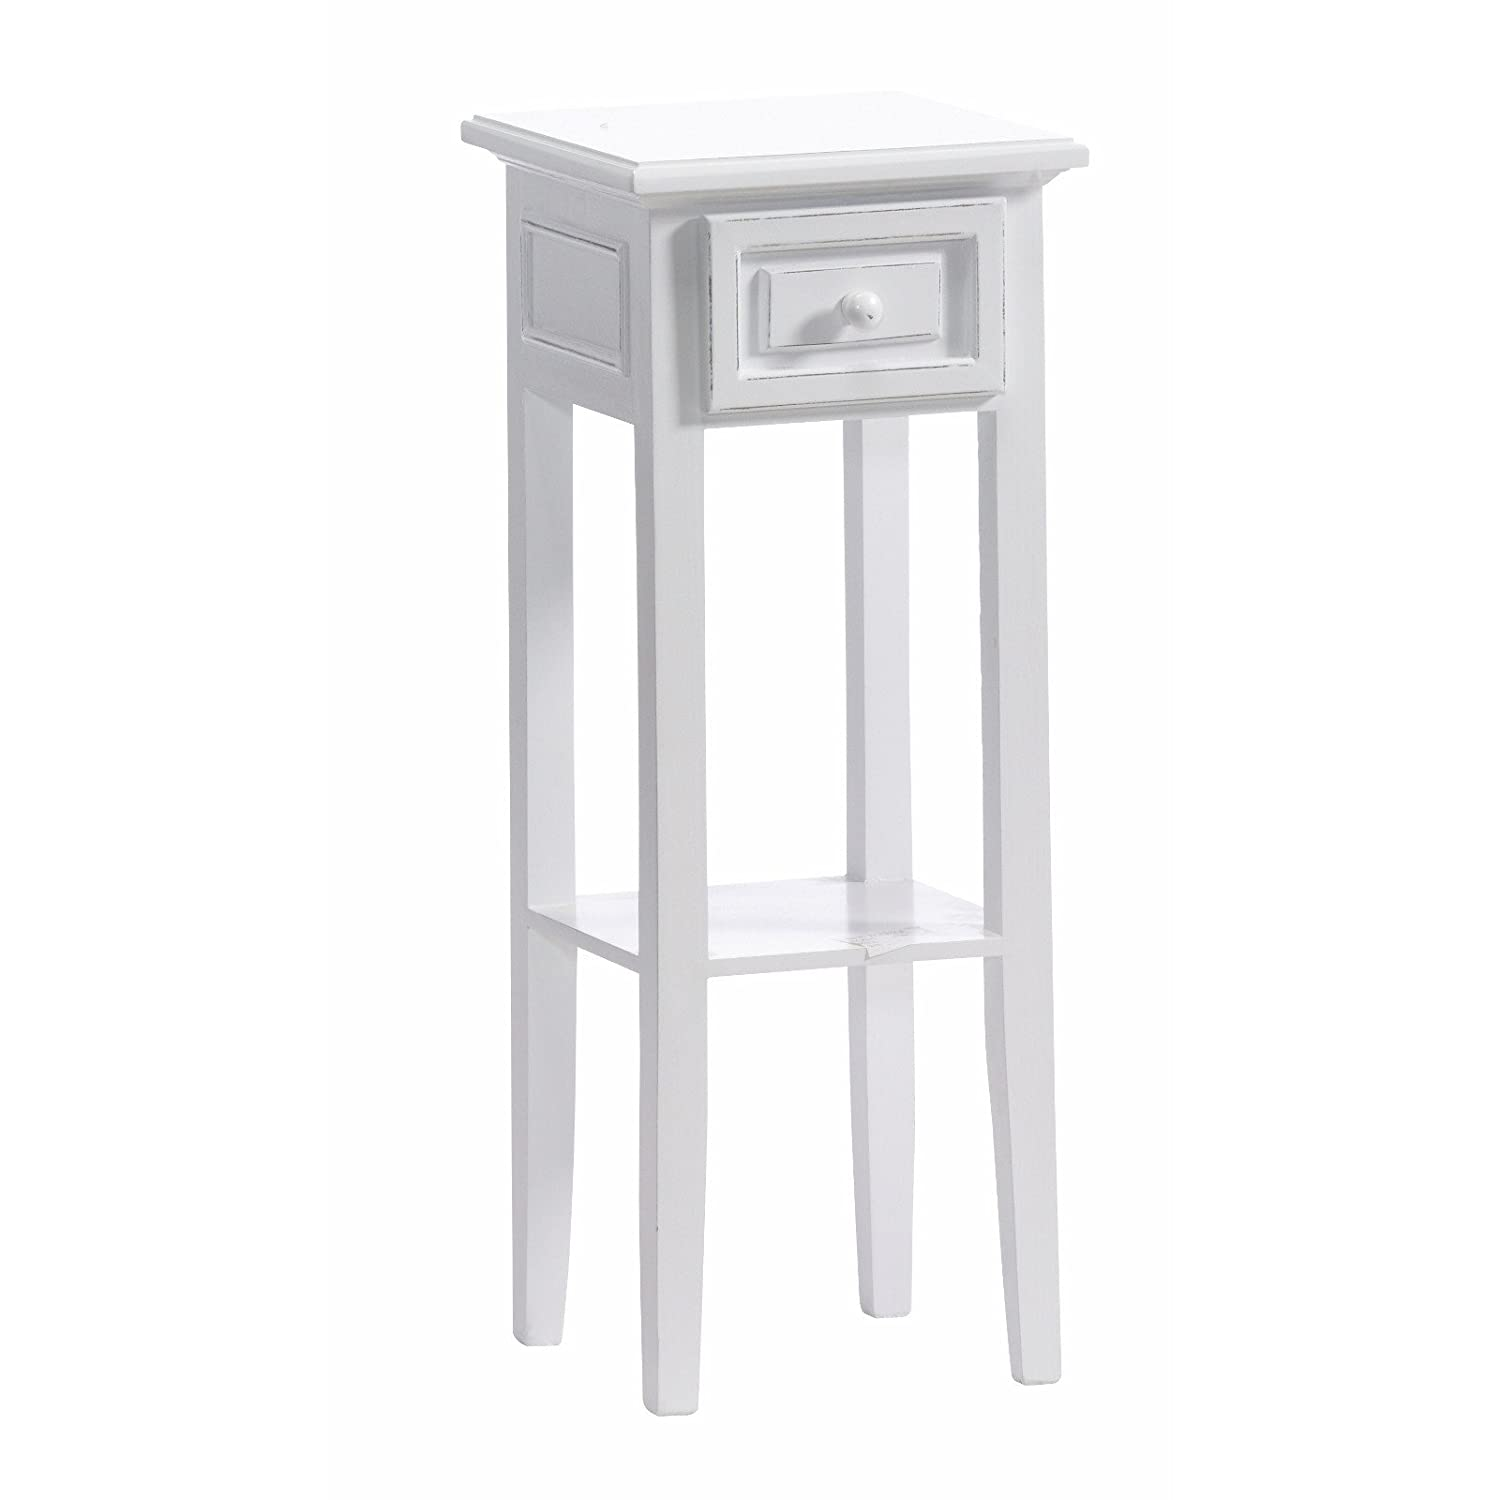 Delightful DESIGN TELEPHONE TABLE COUNTRY SIDE STYLE With Drawer White Washed From  Xtradefacotry: Amazon.co.uk: Kitchen U0026 Home